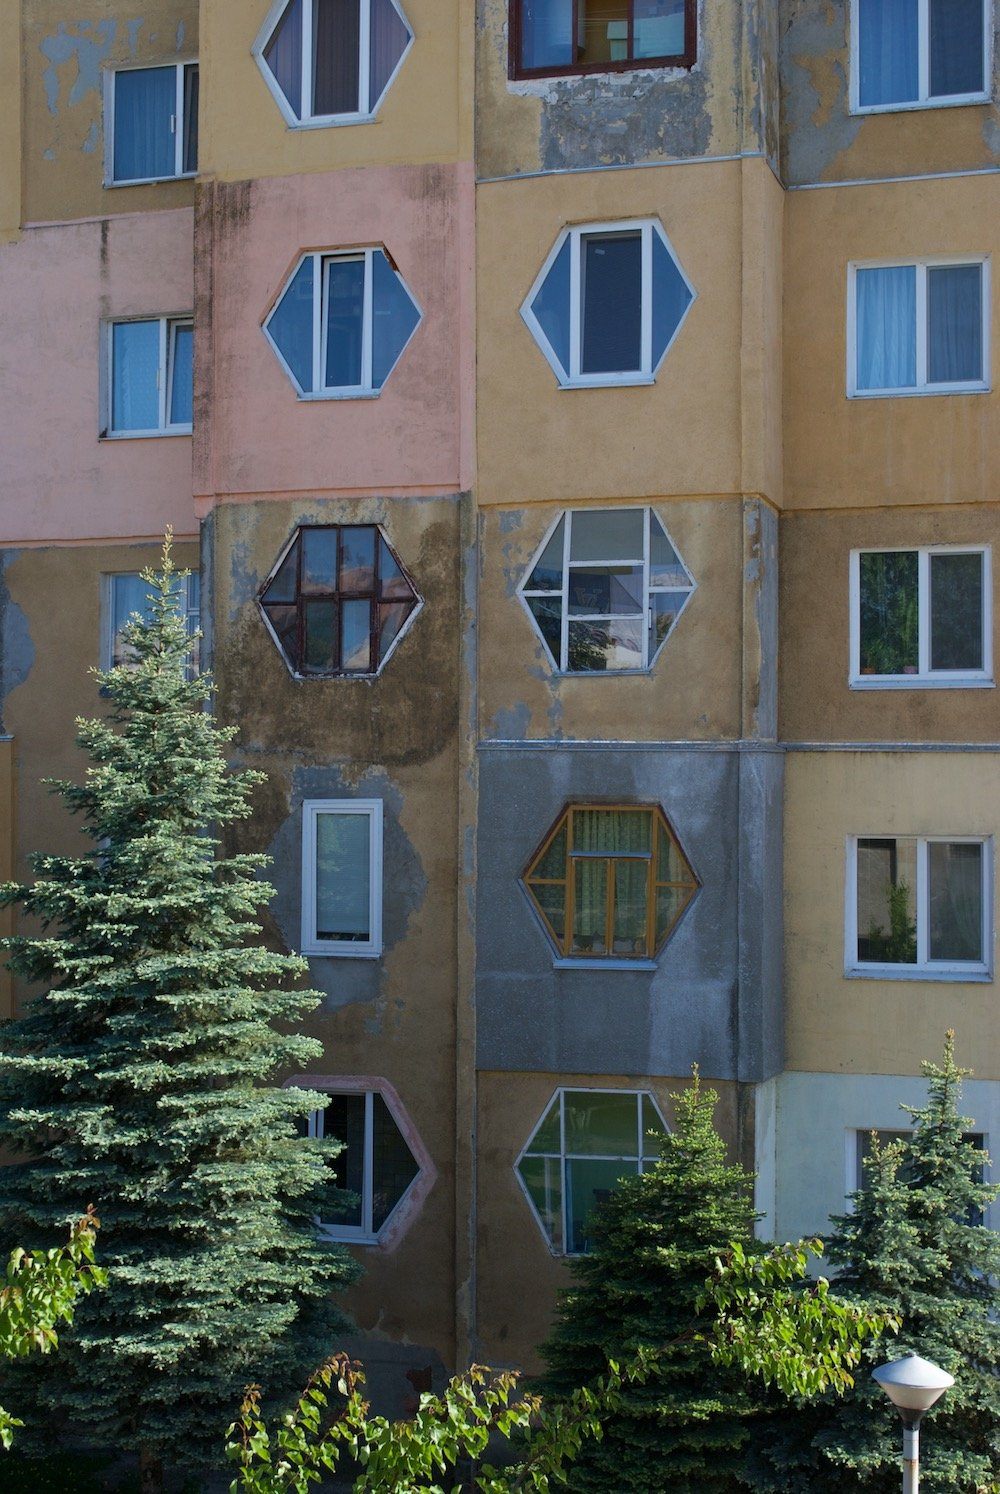 A building in the Azerbaijan quarter. Image: Aleksandra Burshteyn